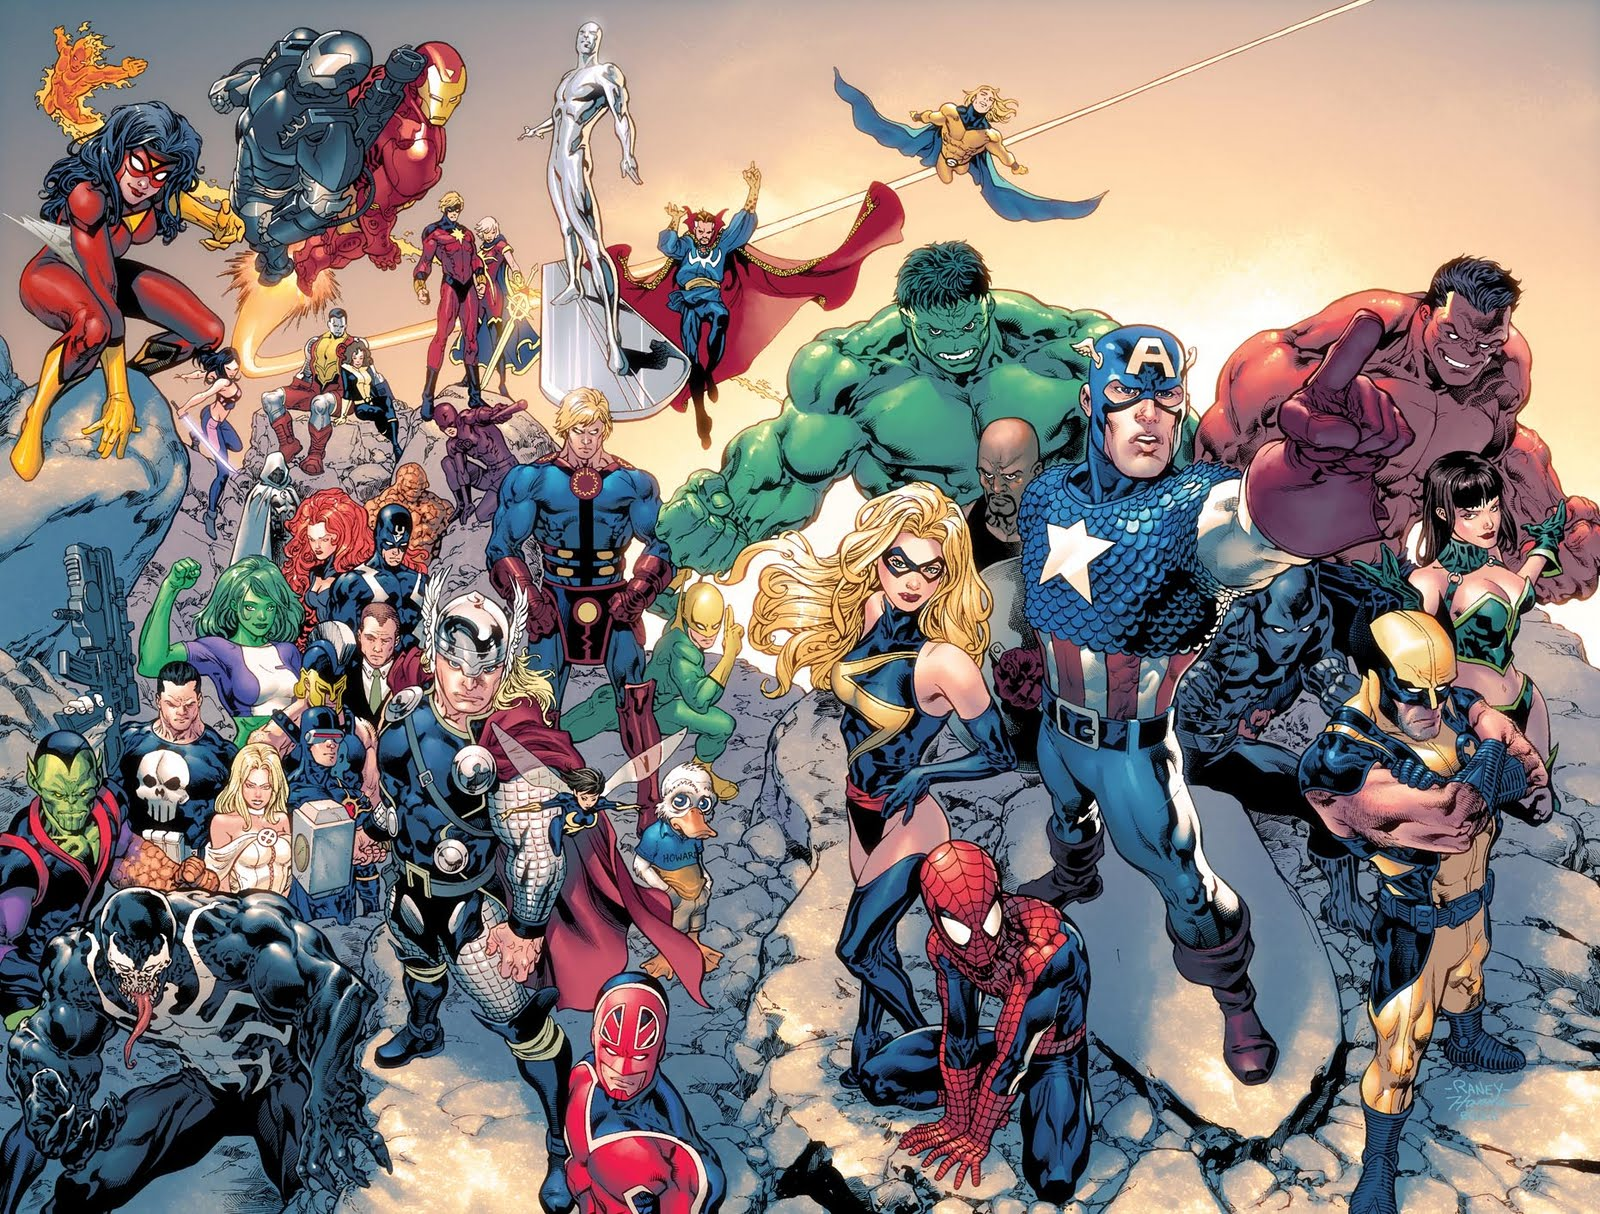 1bpblogspot 1UnSU8ULh1U TiMq8JJb9WI Marvel Comics HD Desktop Wallpapers